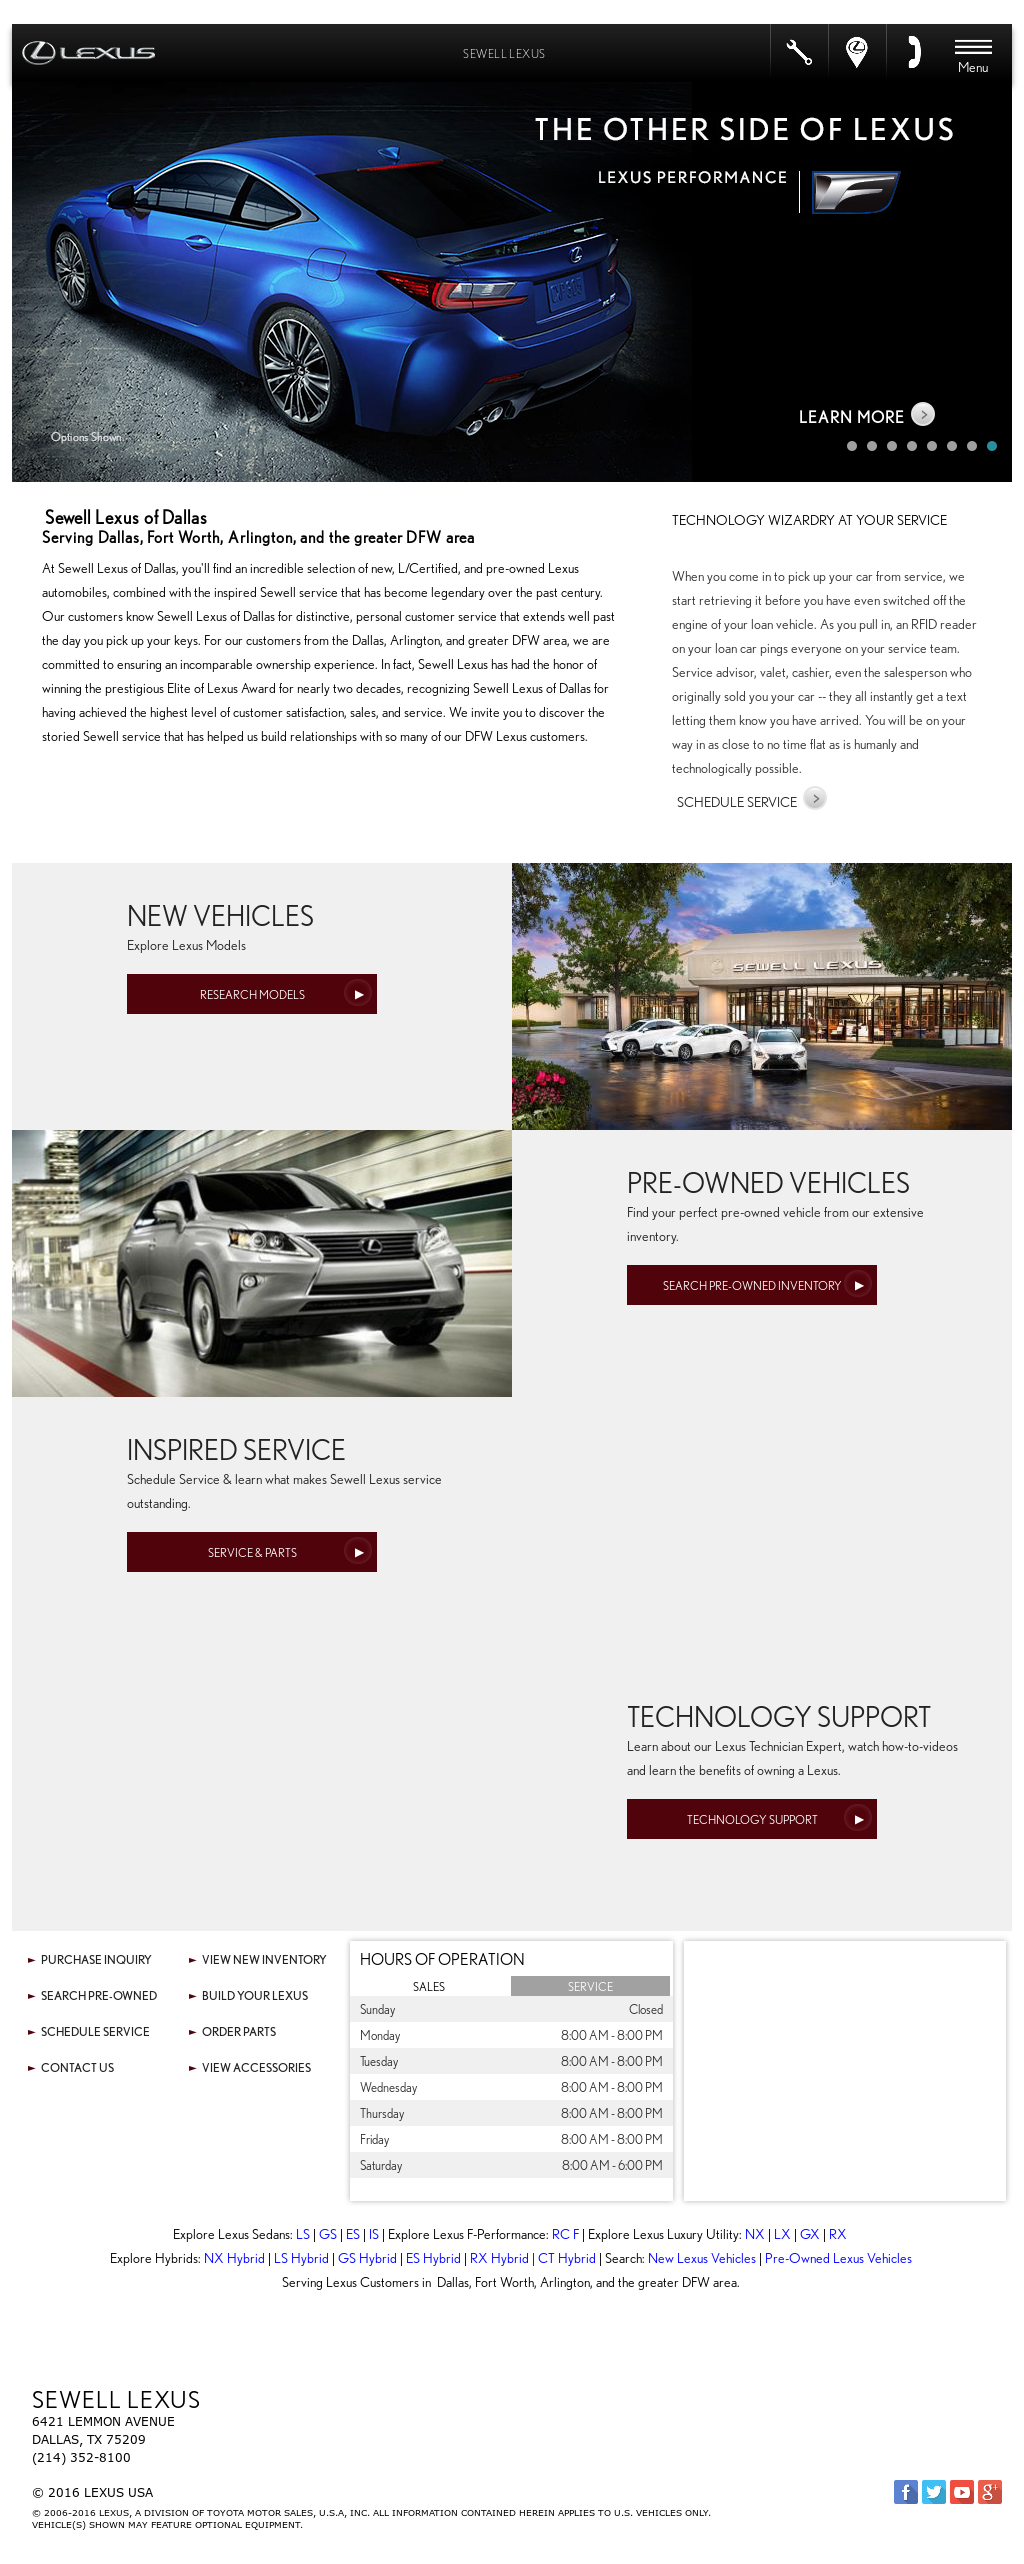 Sewell Lexus Dallas petitors Revenue and Employees Owler